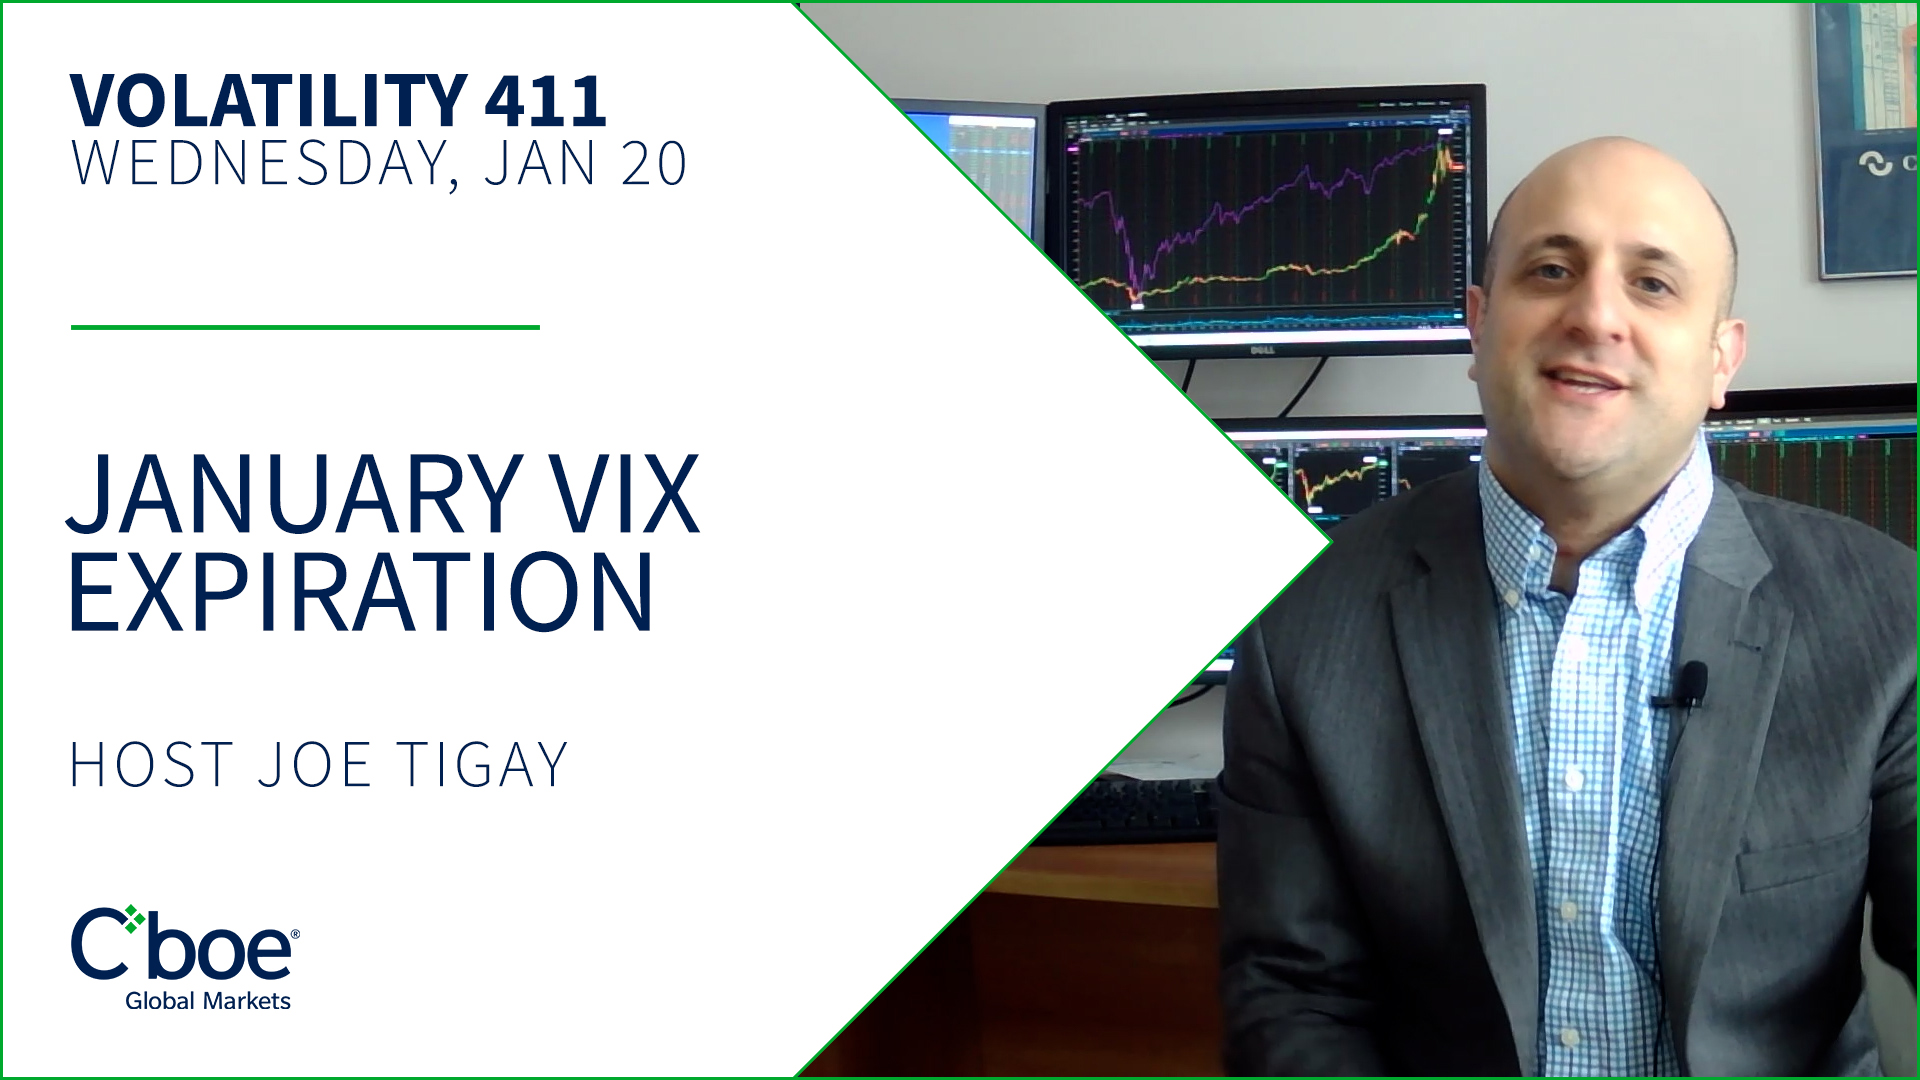 January VIX Expiration Thumbnail